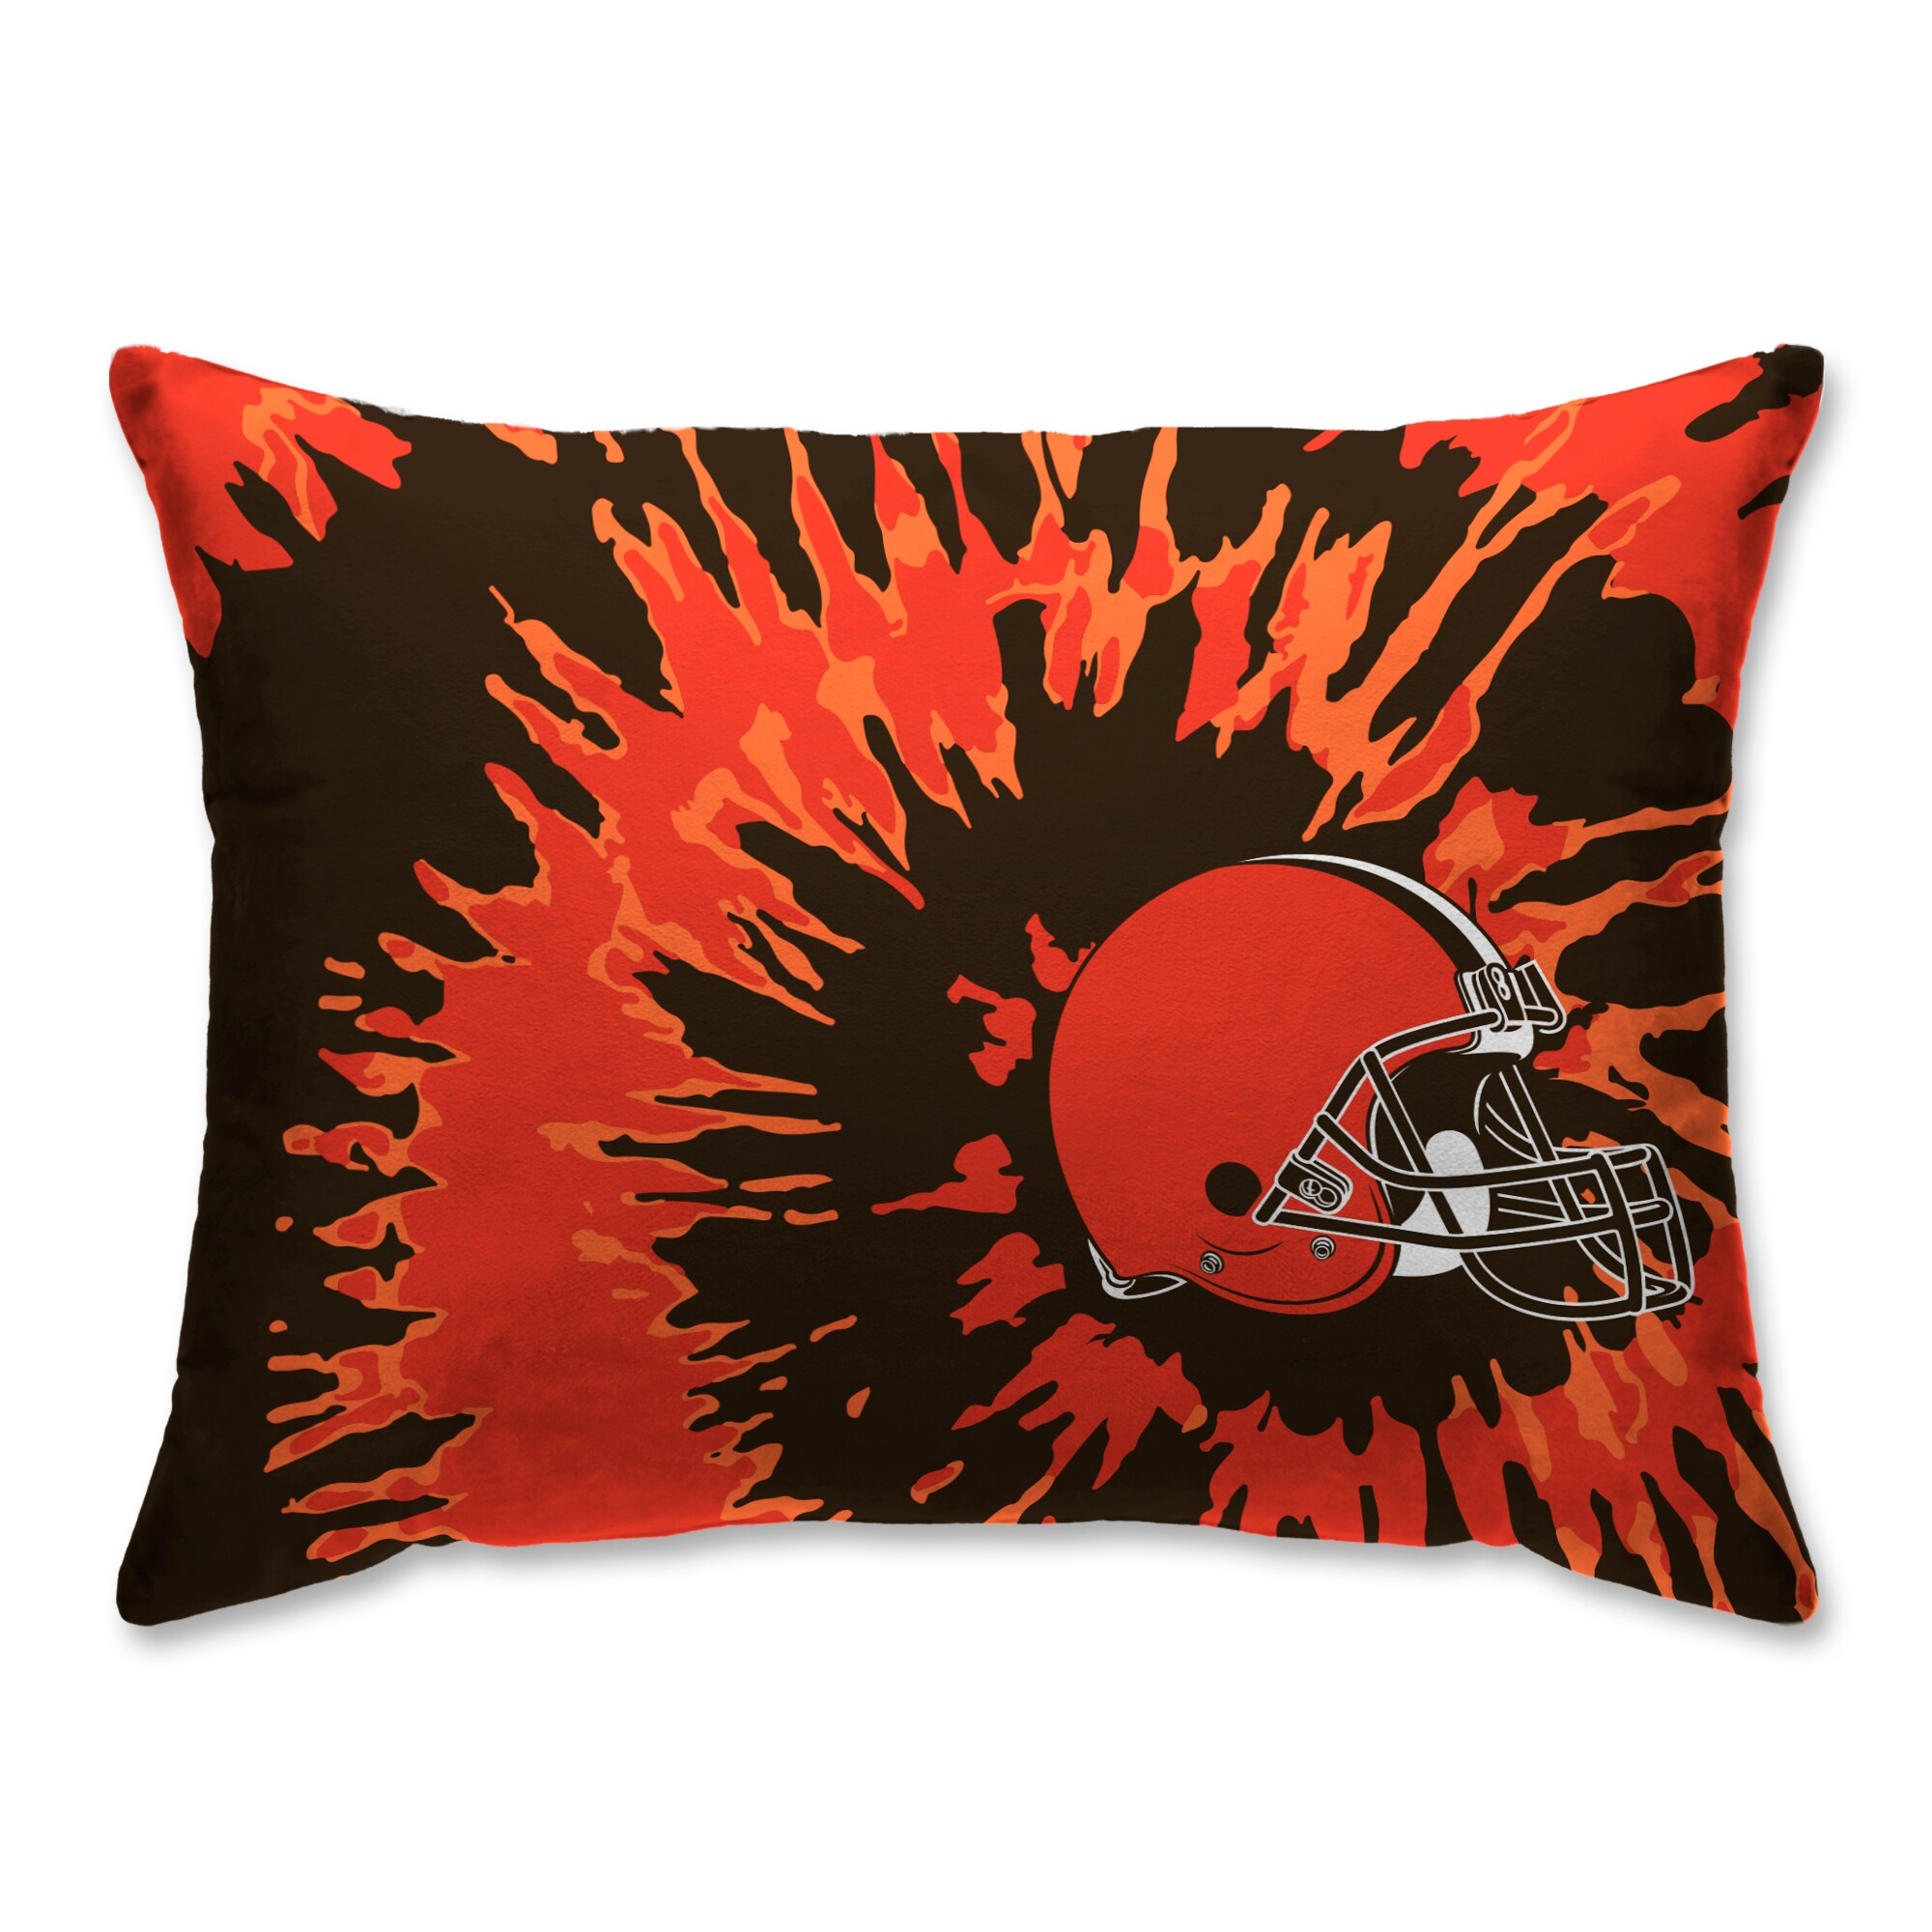 Cleveland Browns Tie Dye Plush Bed Pillow - Brown